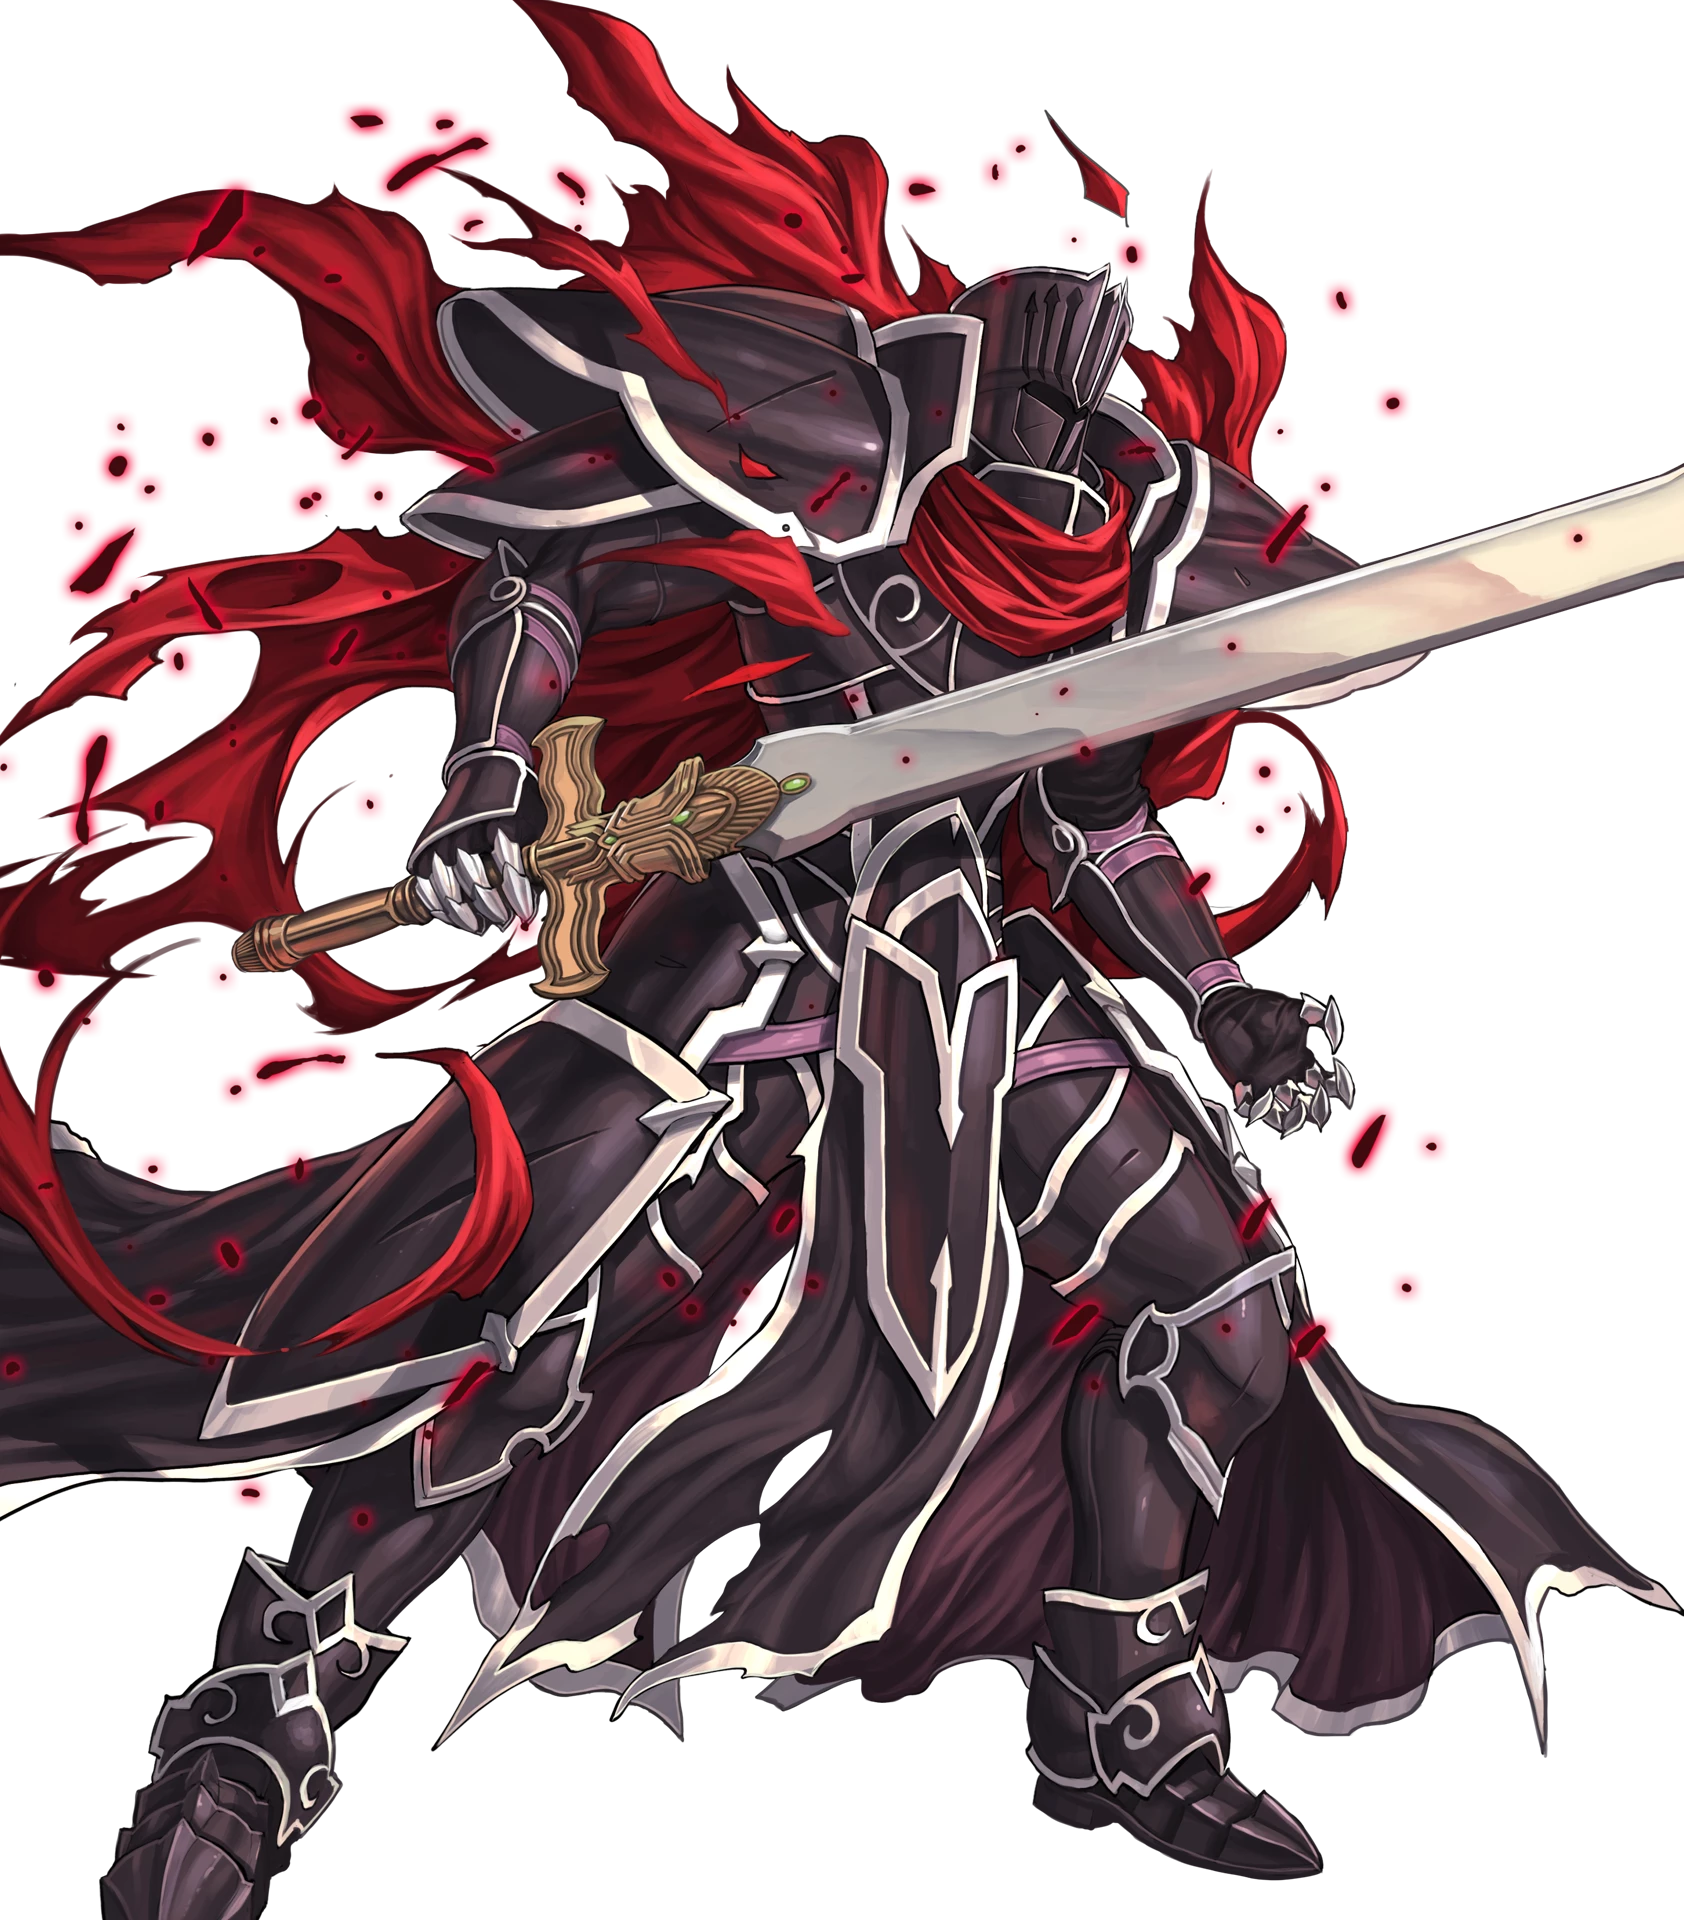 Full Injured Black Knight Png Png Image 1684 1920 Pixels Scaled 49 Fire Emblem Knight Armor Fire Emblem Heroes